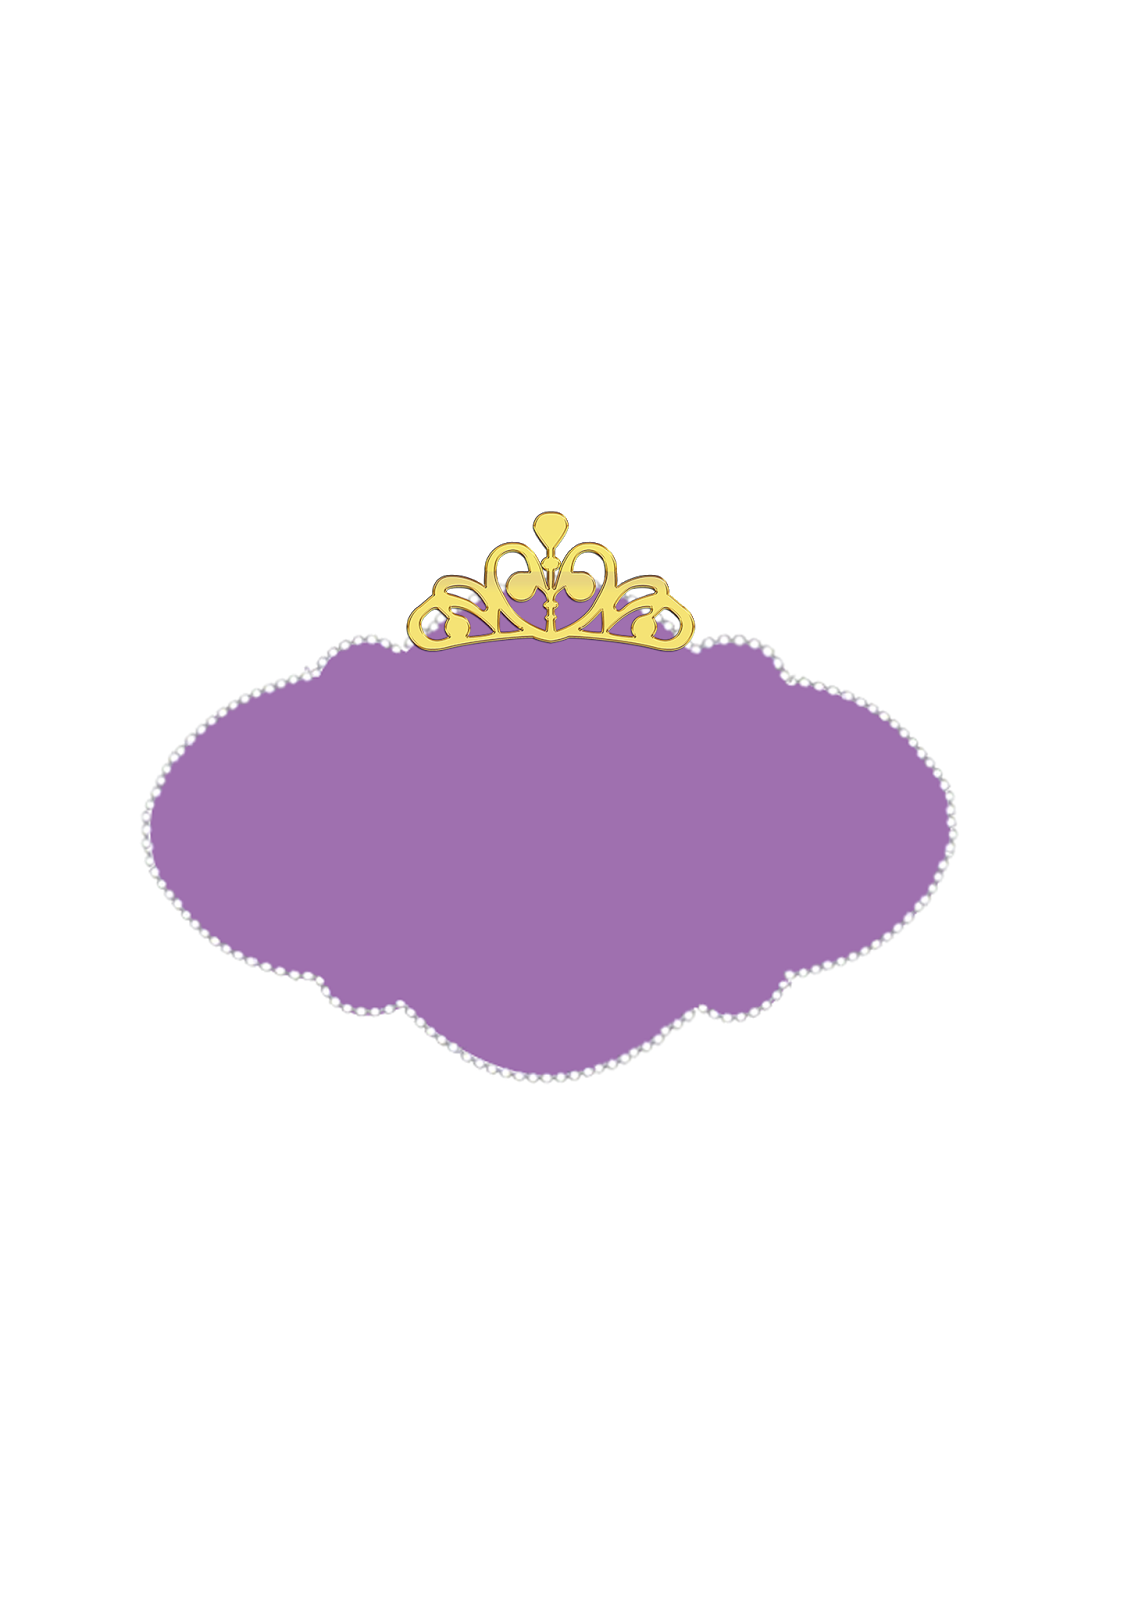 sofia the first crown template.html